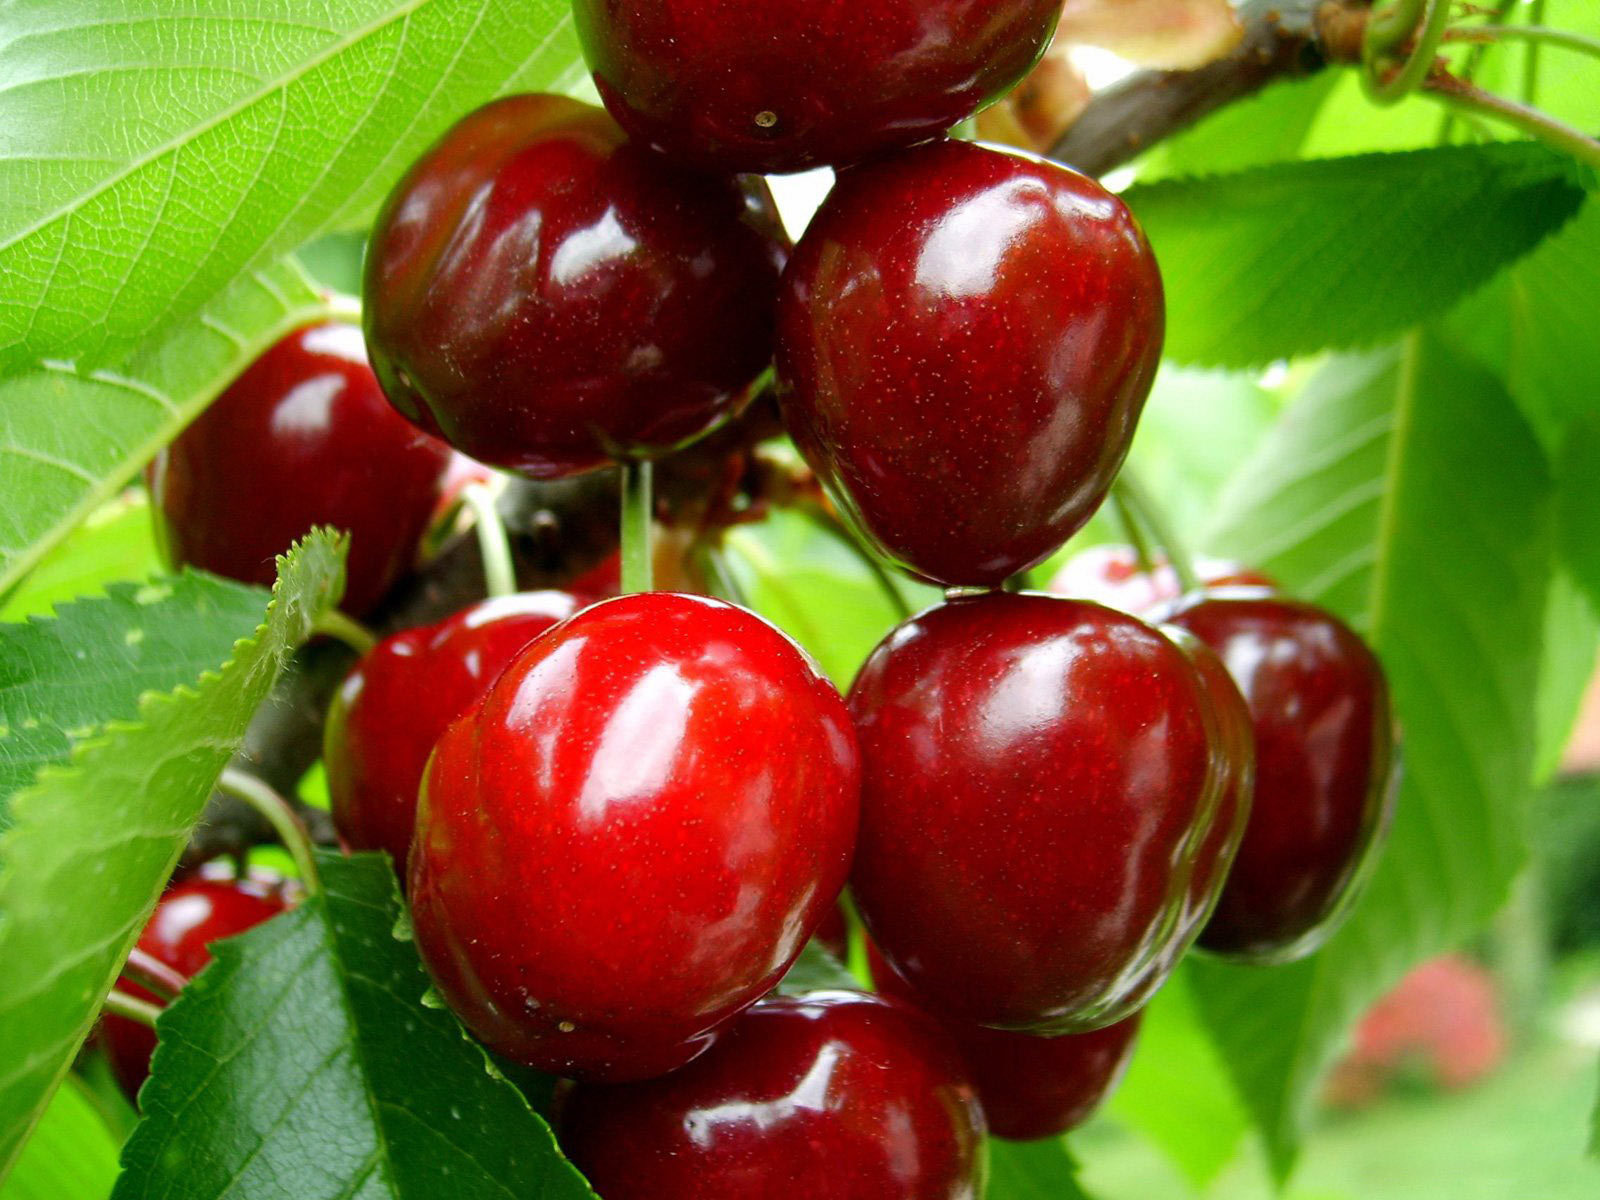 http://terapiados.net/sites/default/files/Cherry_fruit_0.jpg